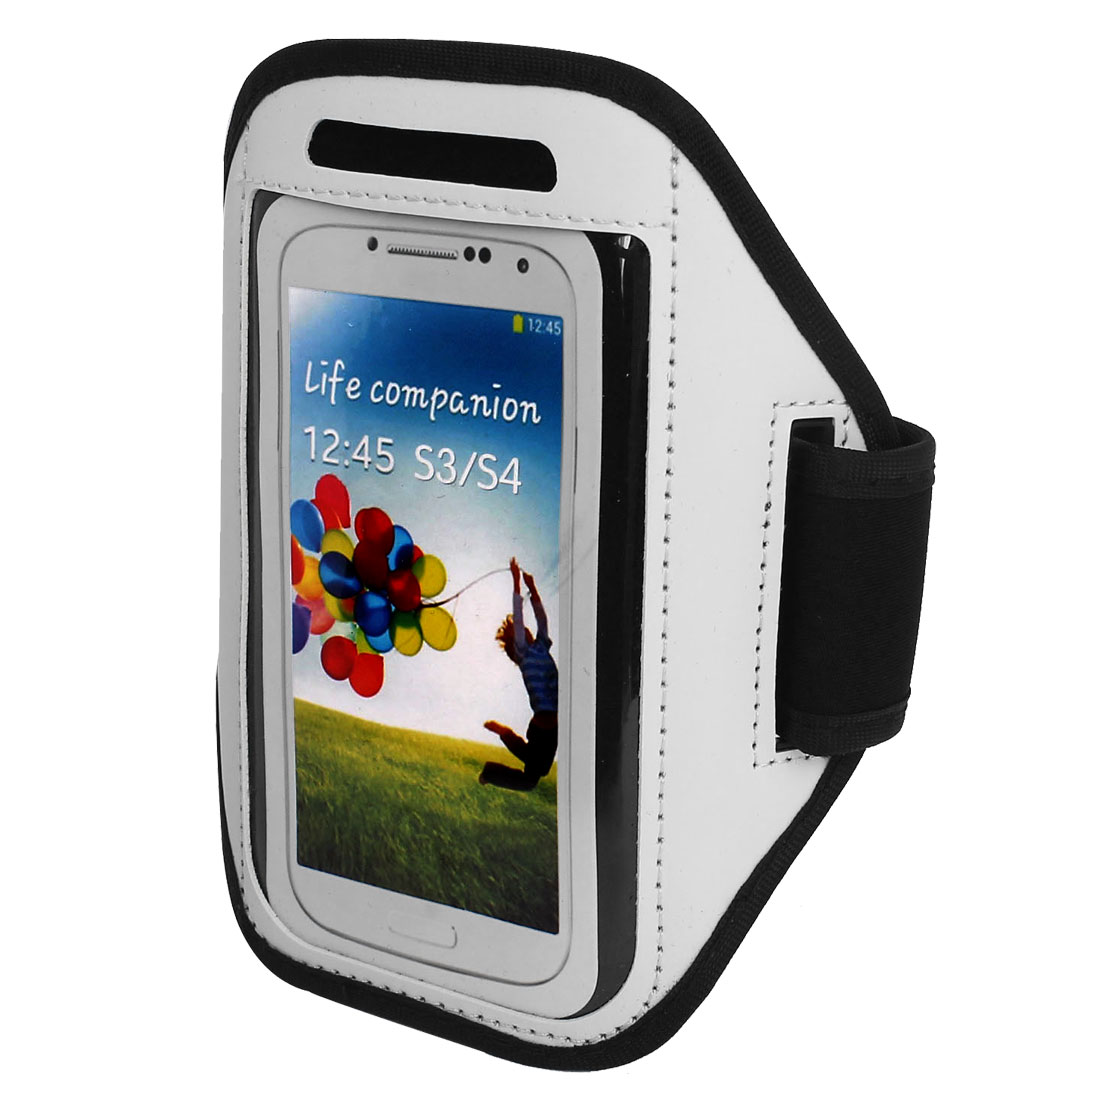 Outdoor Jogging Running Sports Armband Case Cover White for S3 S4 i9300 i9500